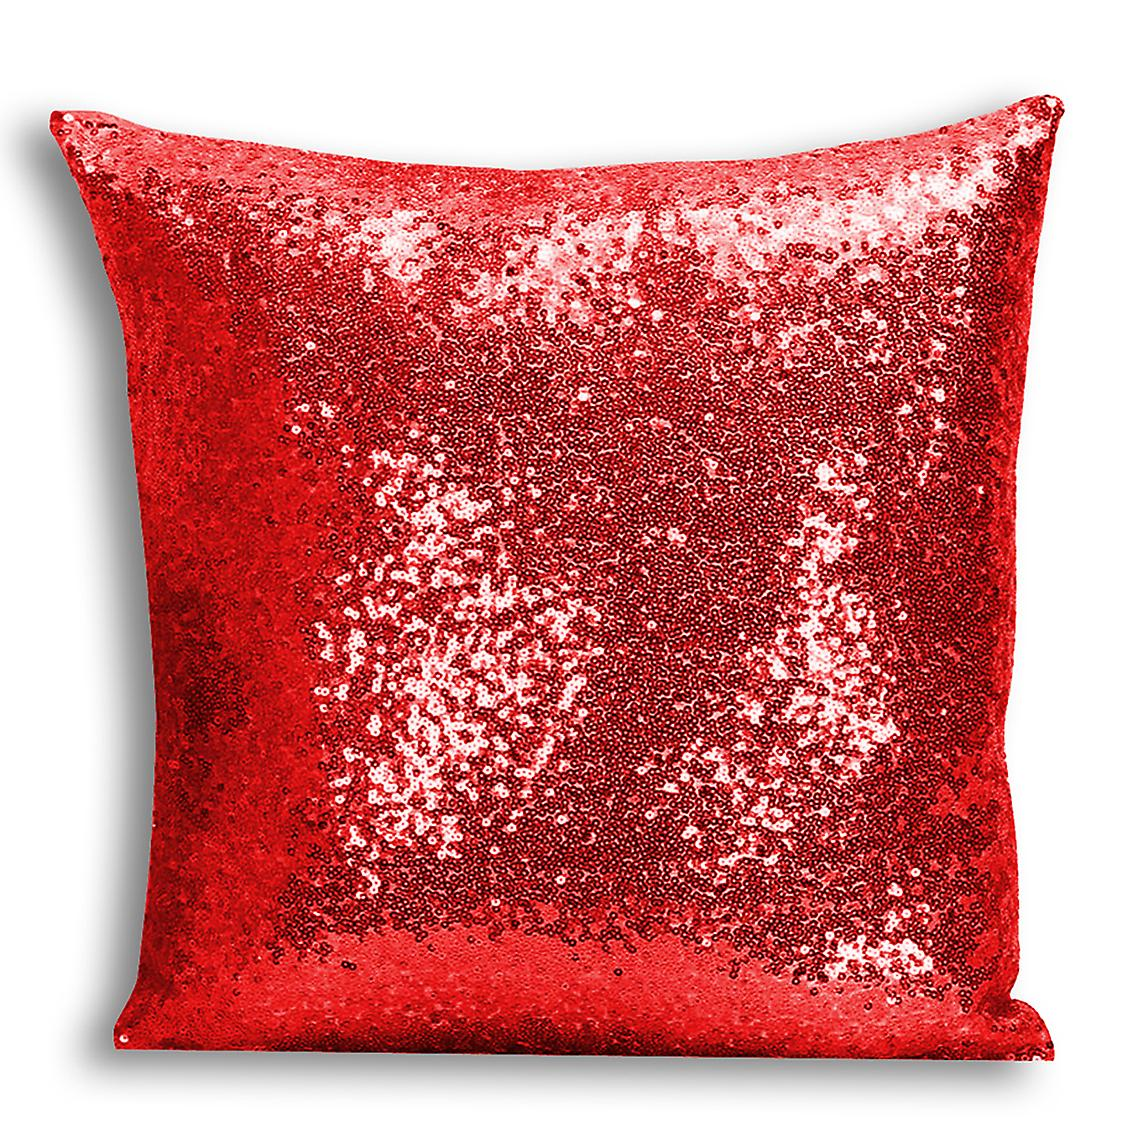 CushionPillow 8 With Cover tronixsUnicorn Home Printed Sequin Inserted Decor Design Red For I wOXZuPkTi